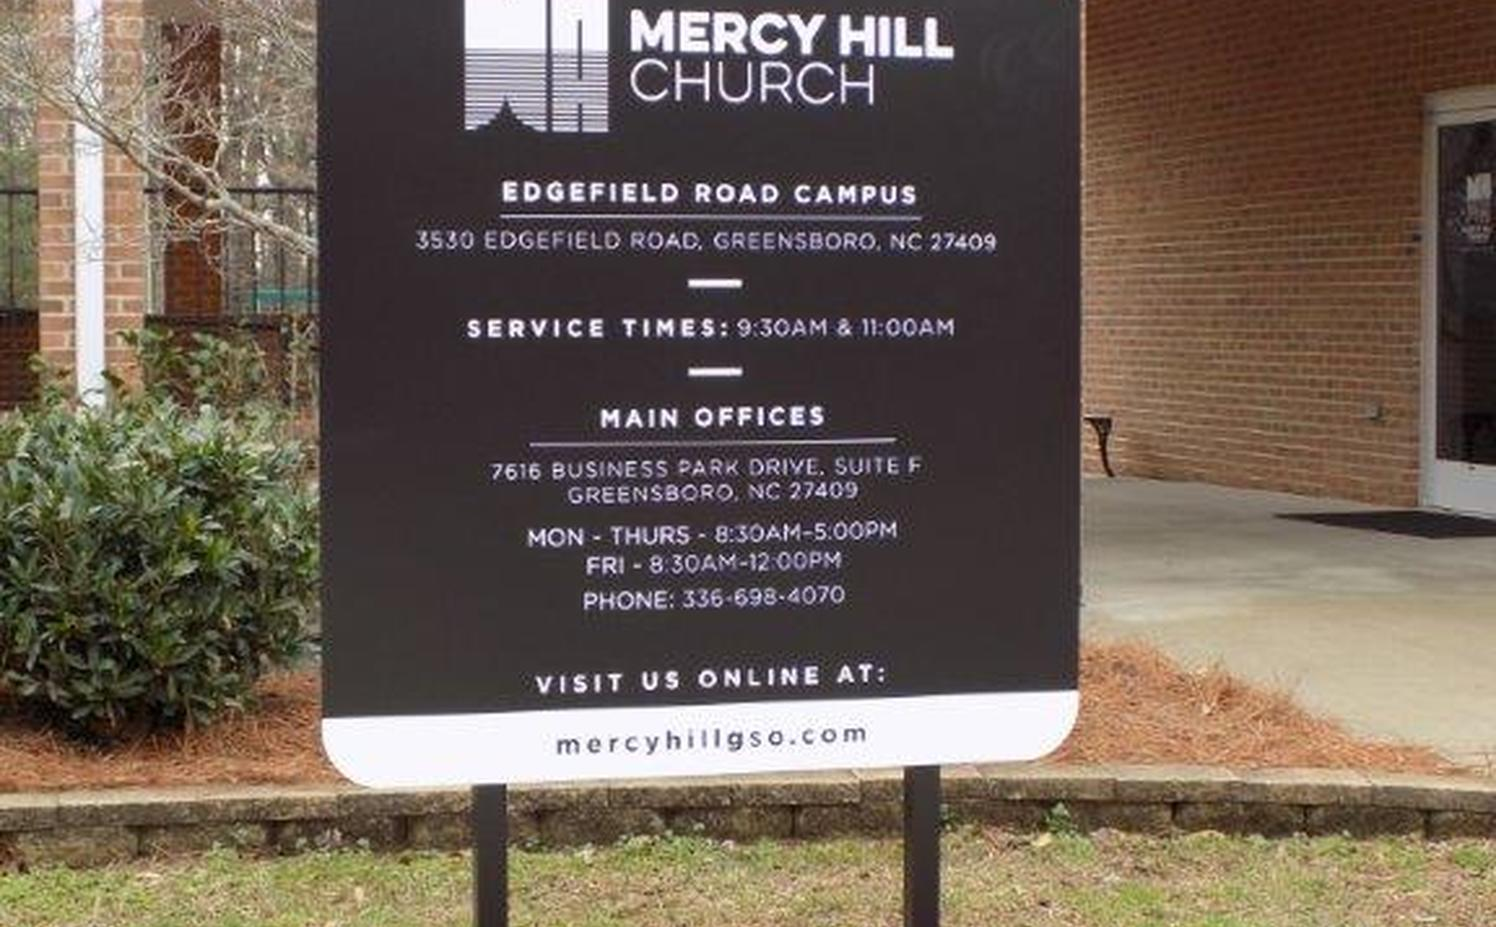 Mercy Hill - Edgefield Road Campus